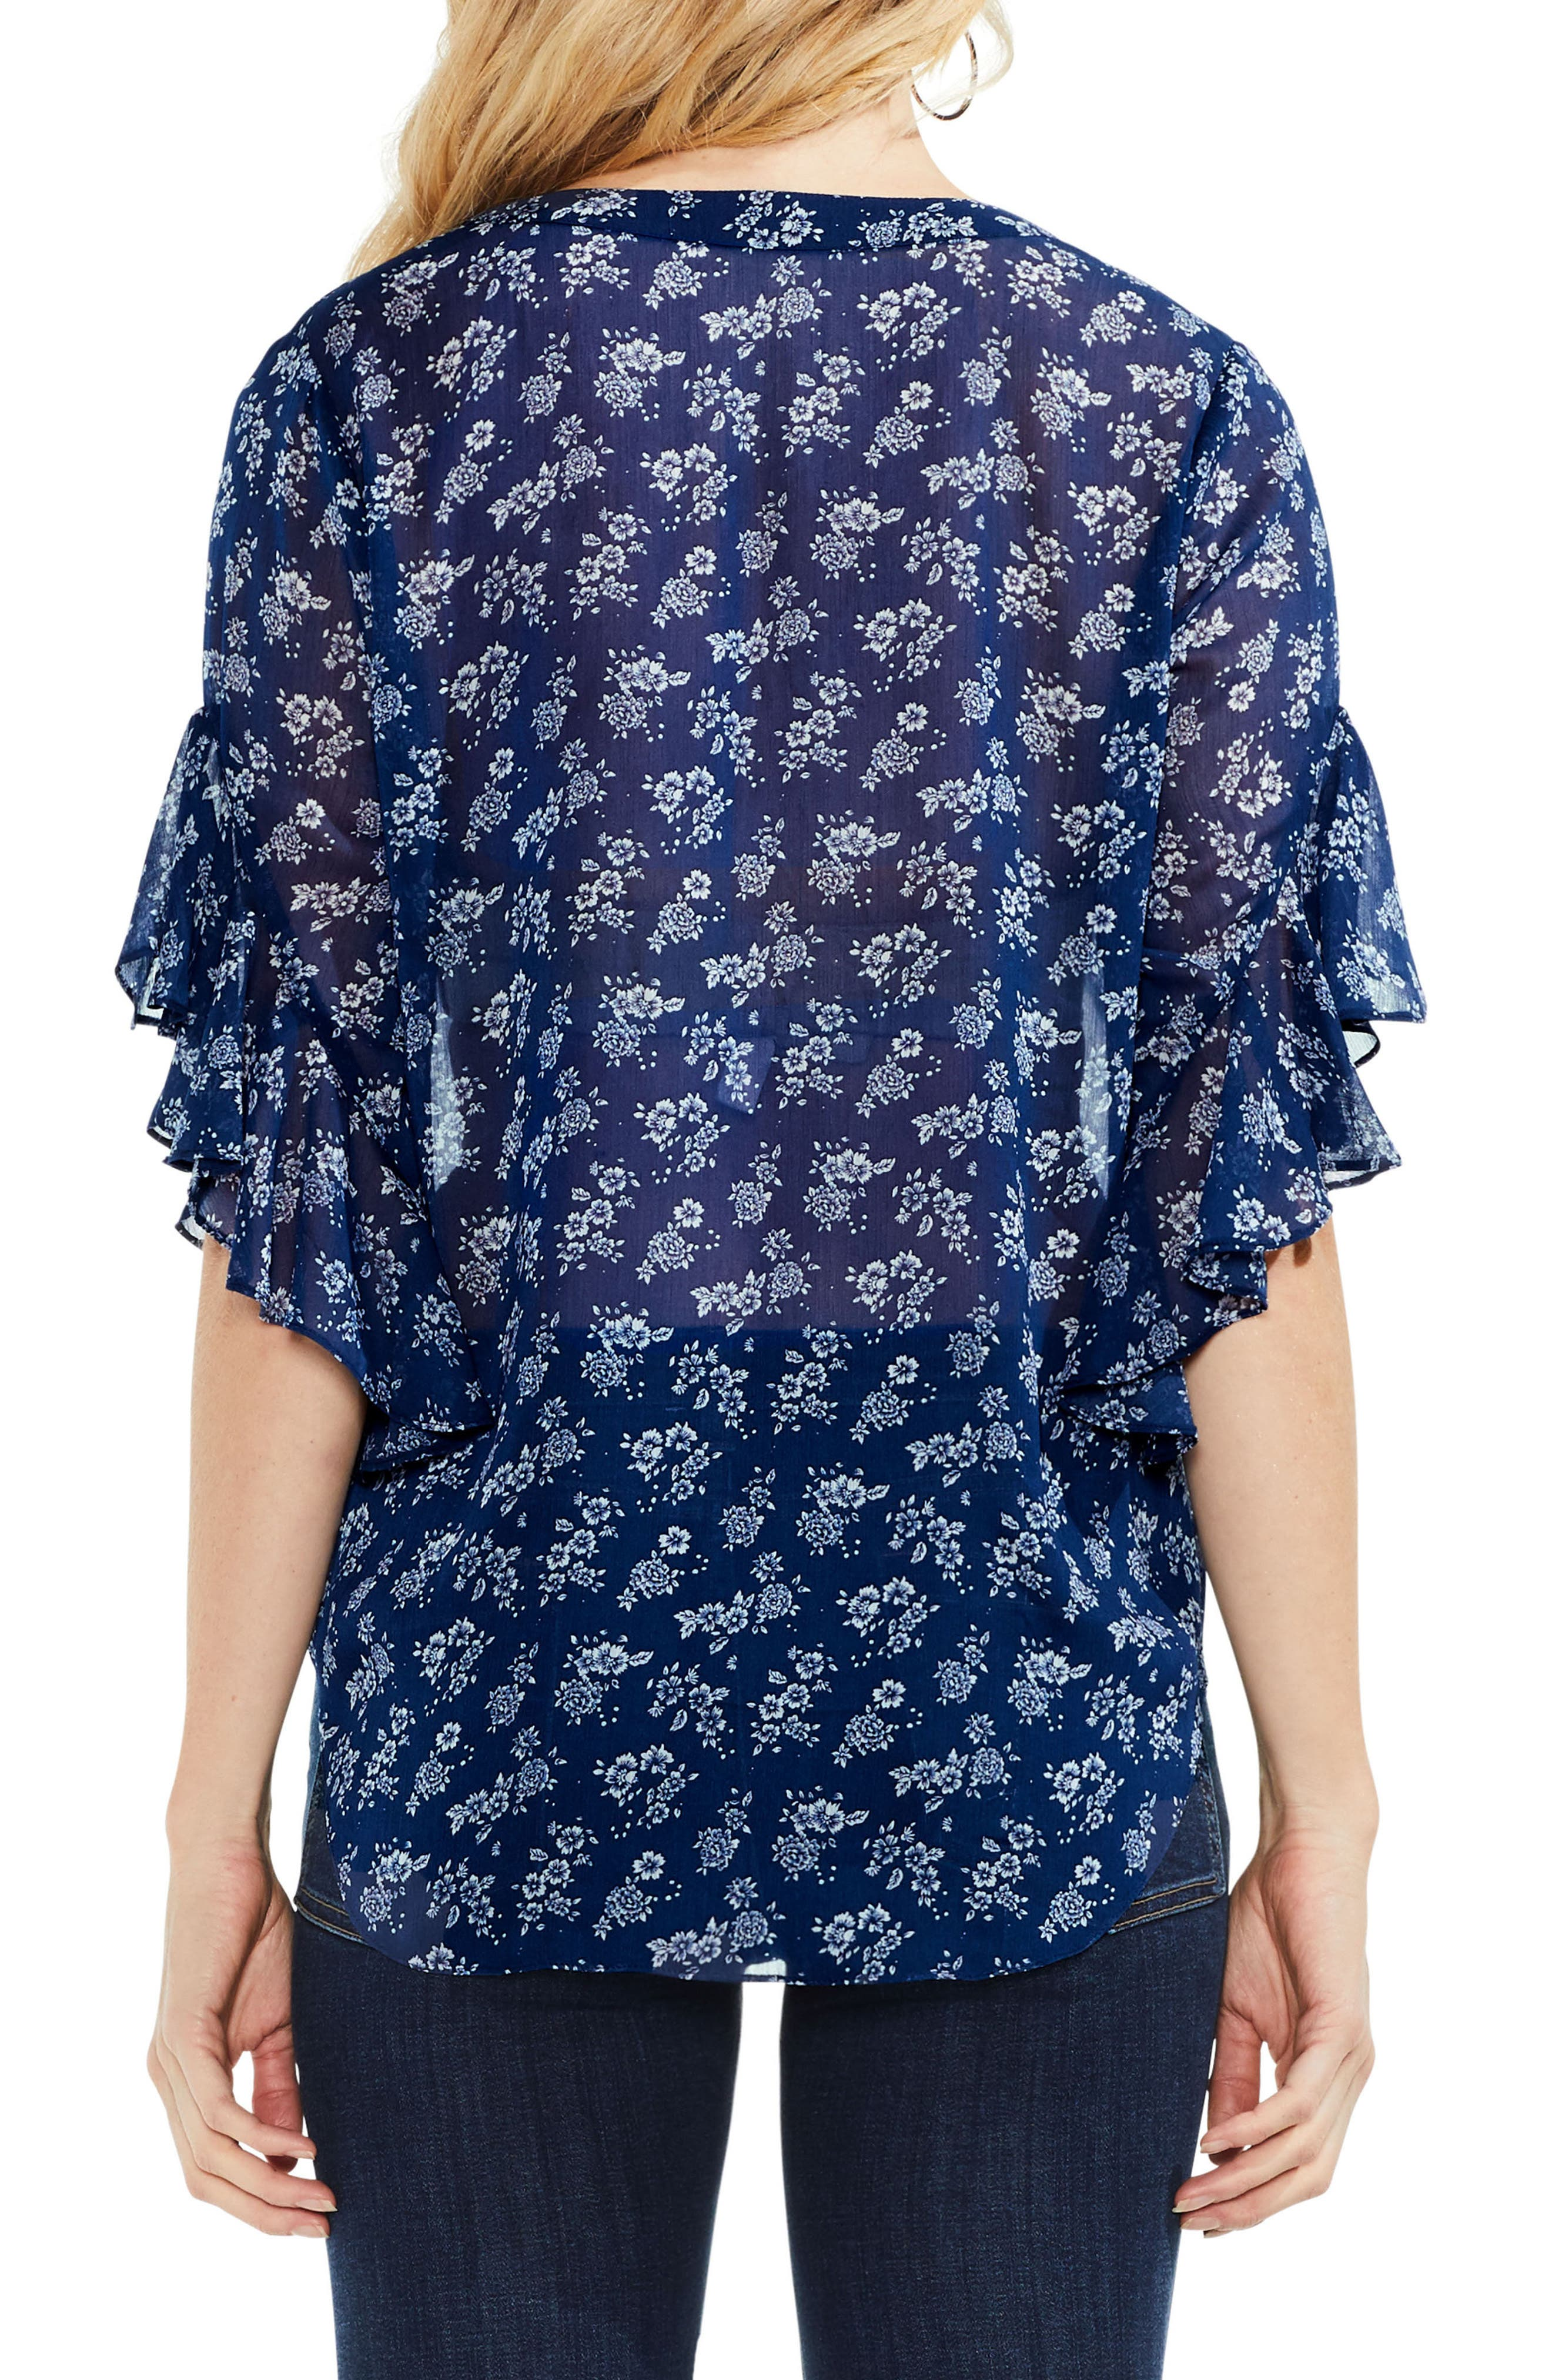 Ruffle Sleeve Floral Top,                             Alternate thumbnail 2, color,                             491